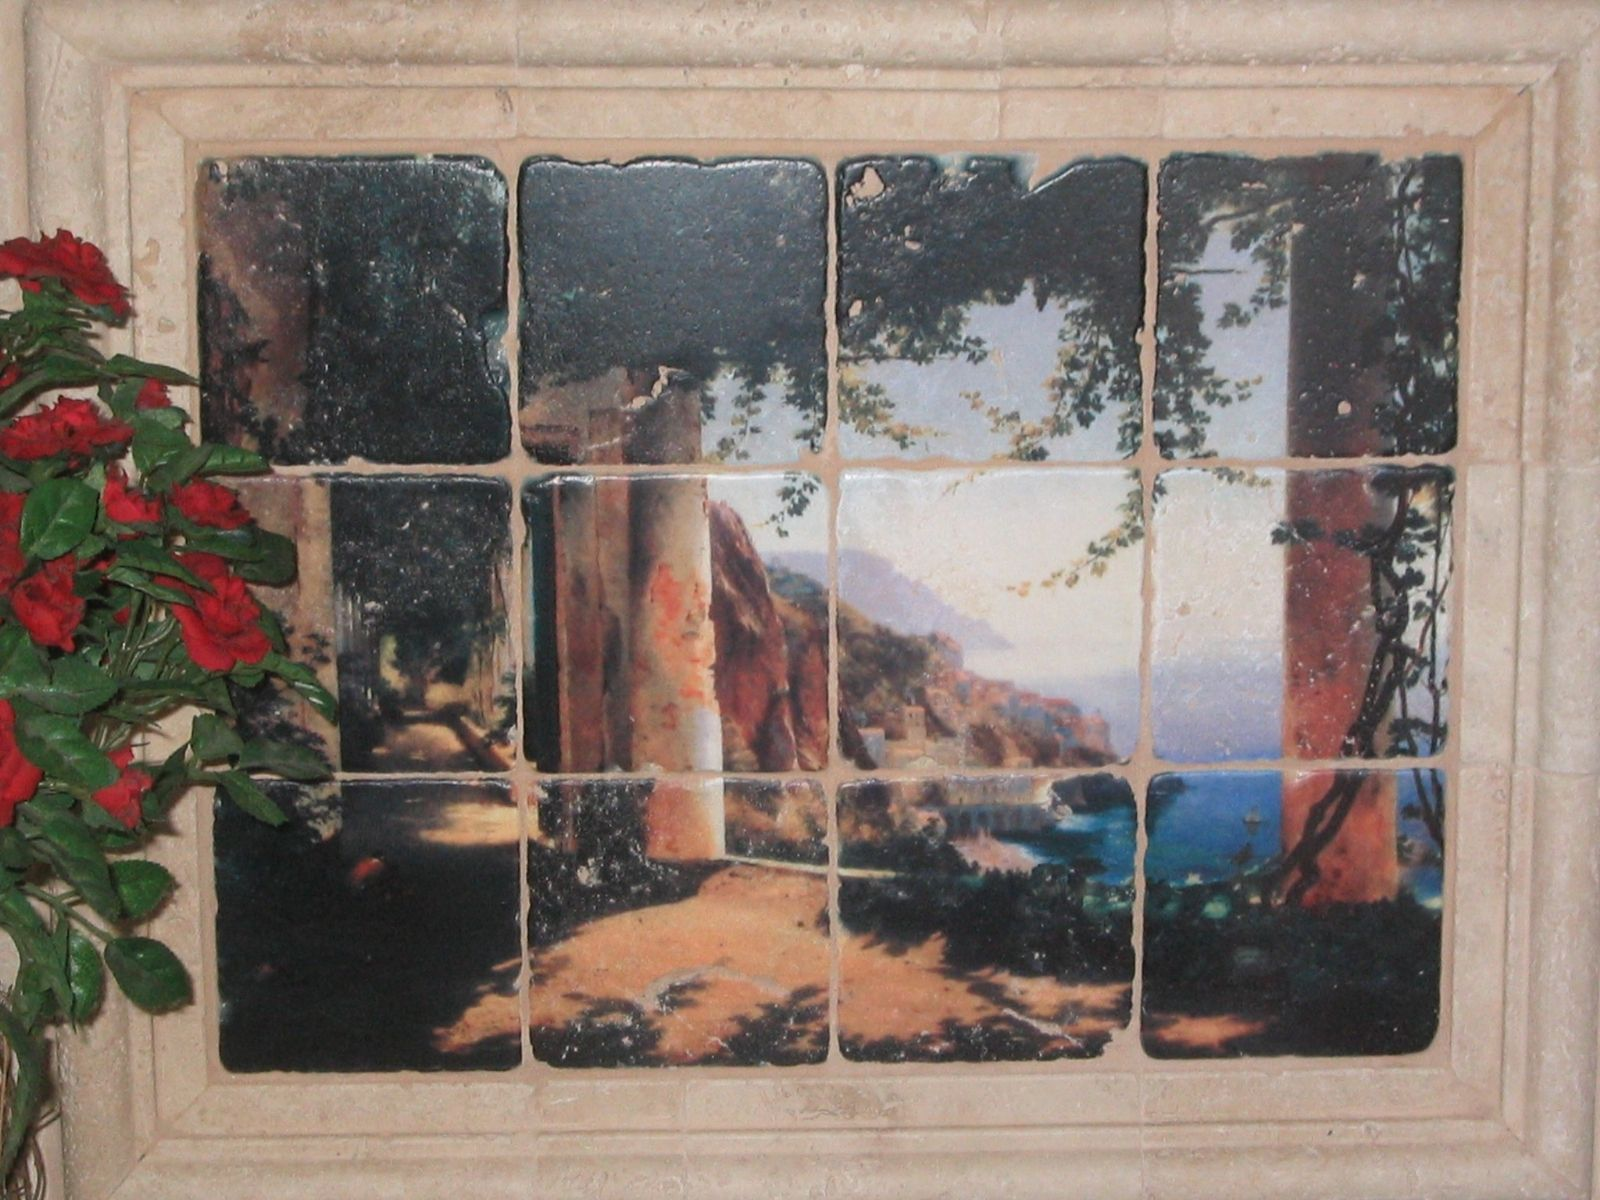 Custom made tumbled marble tile wall mural by flekman art for Custom mural tiles